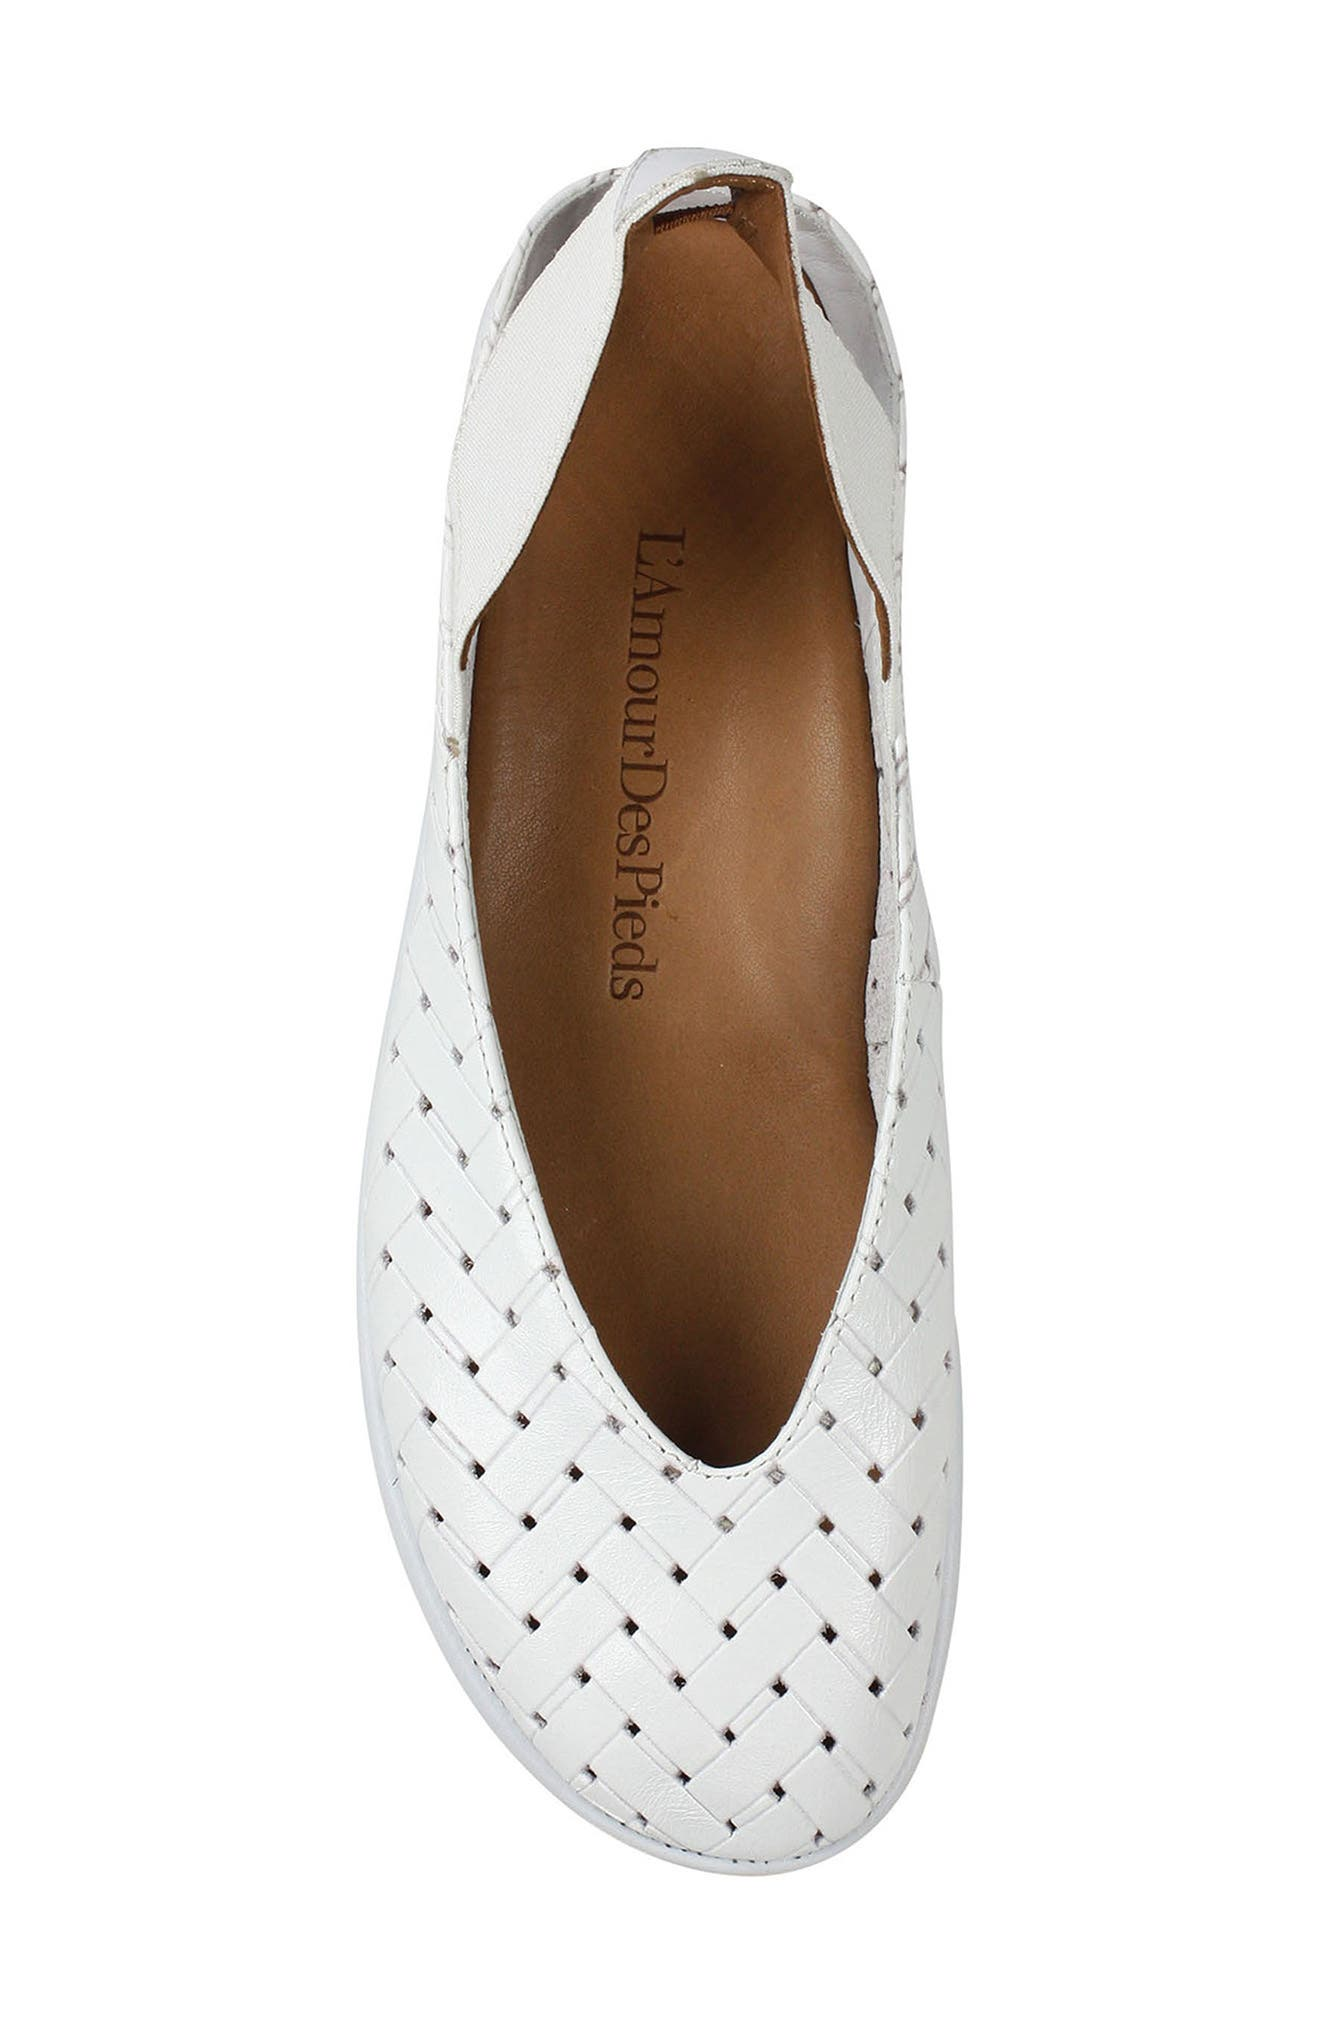 'Cypris' Slingback Wedge,                             Alternate thumbnail 5, color,                             White Leather